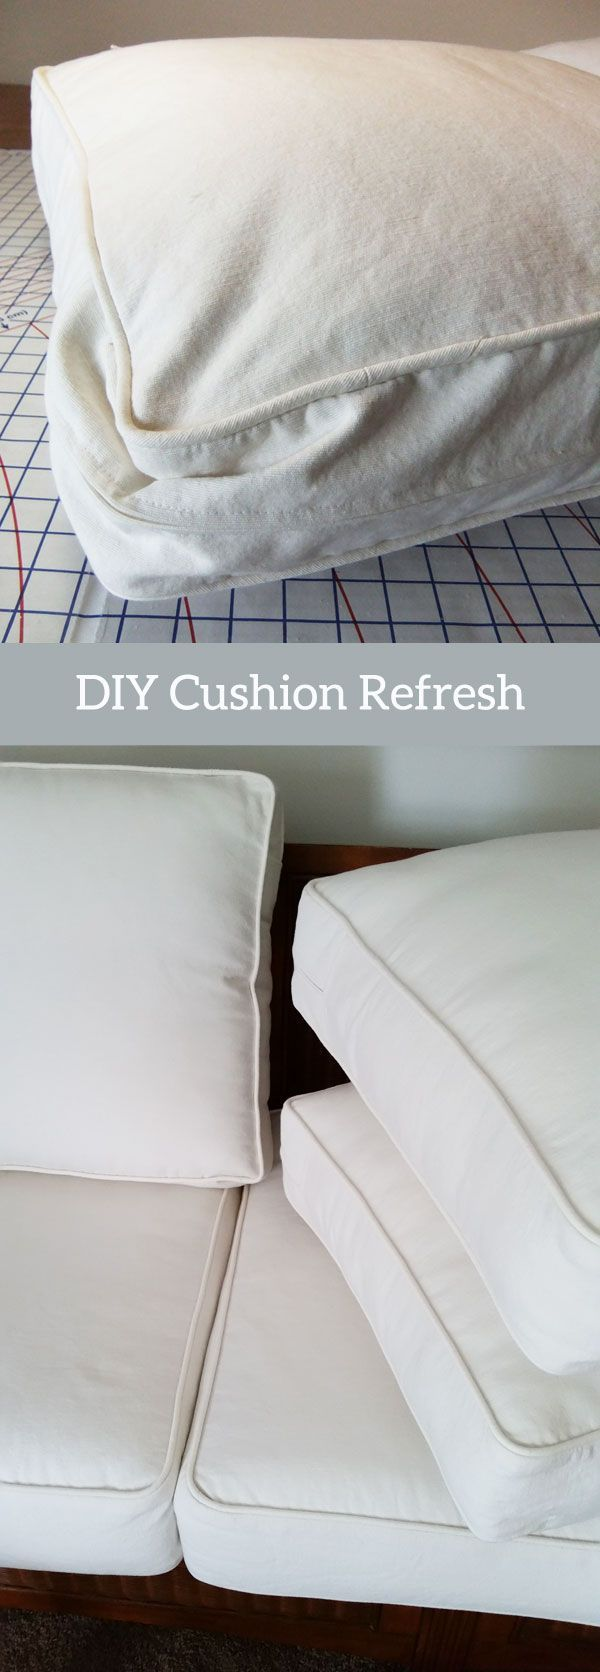 Diy Cushion Refresh For Your Sofa And Armchair